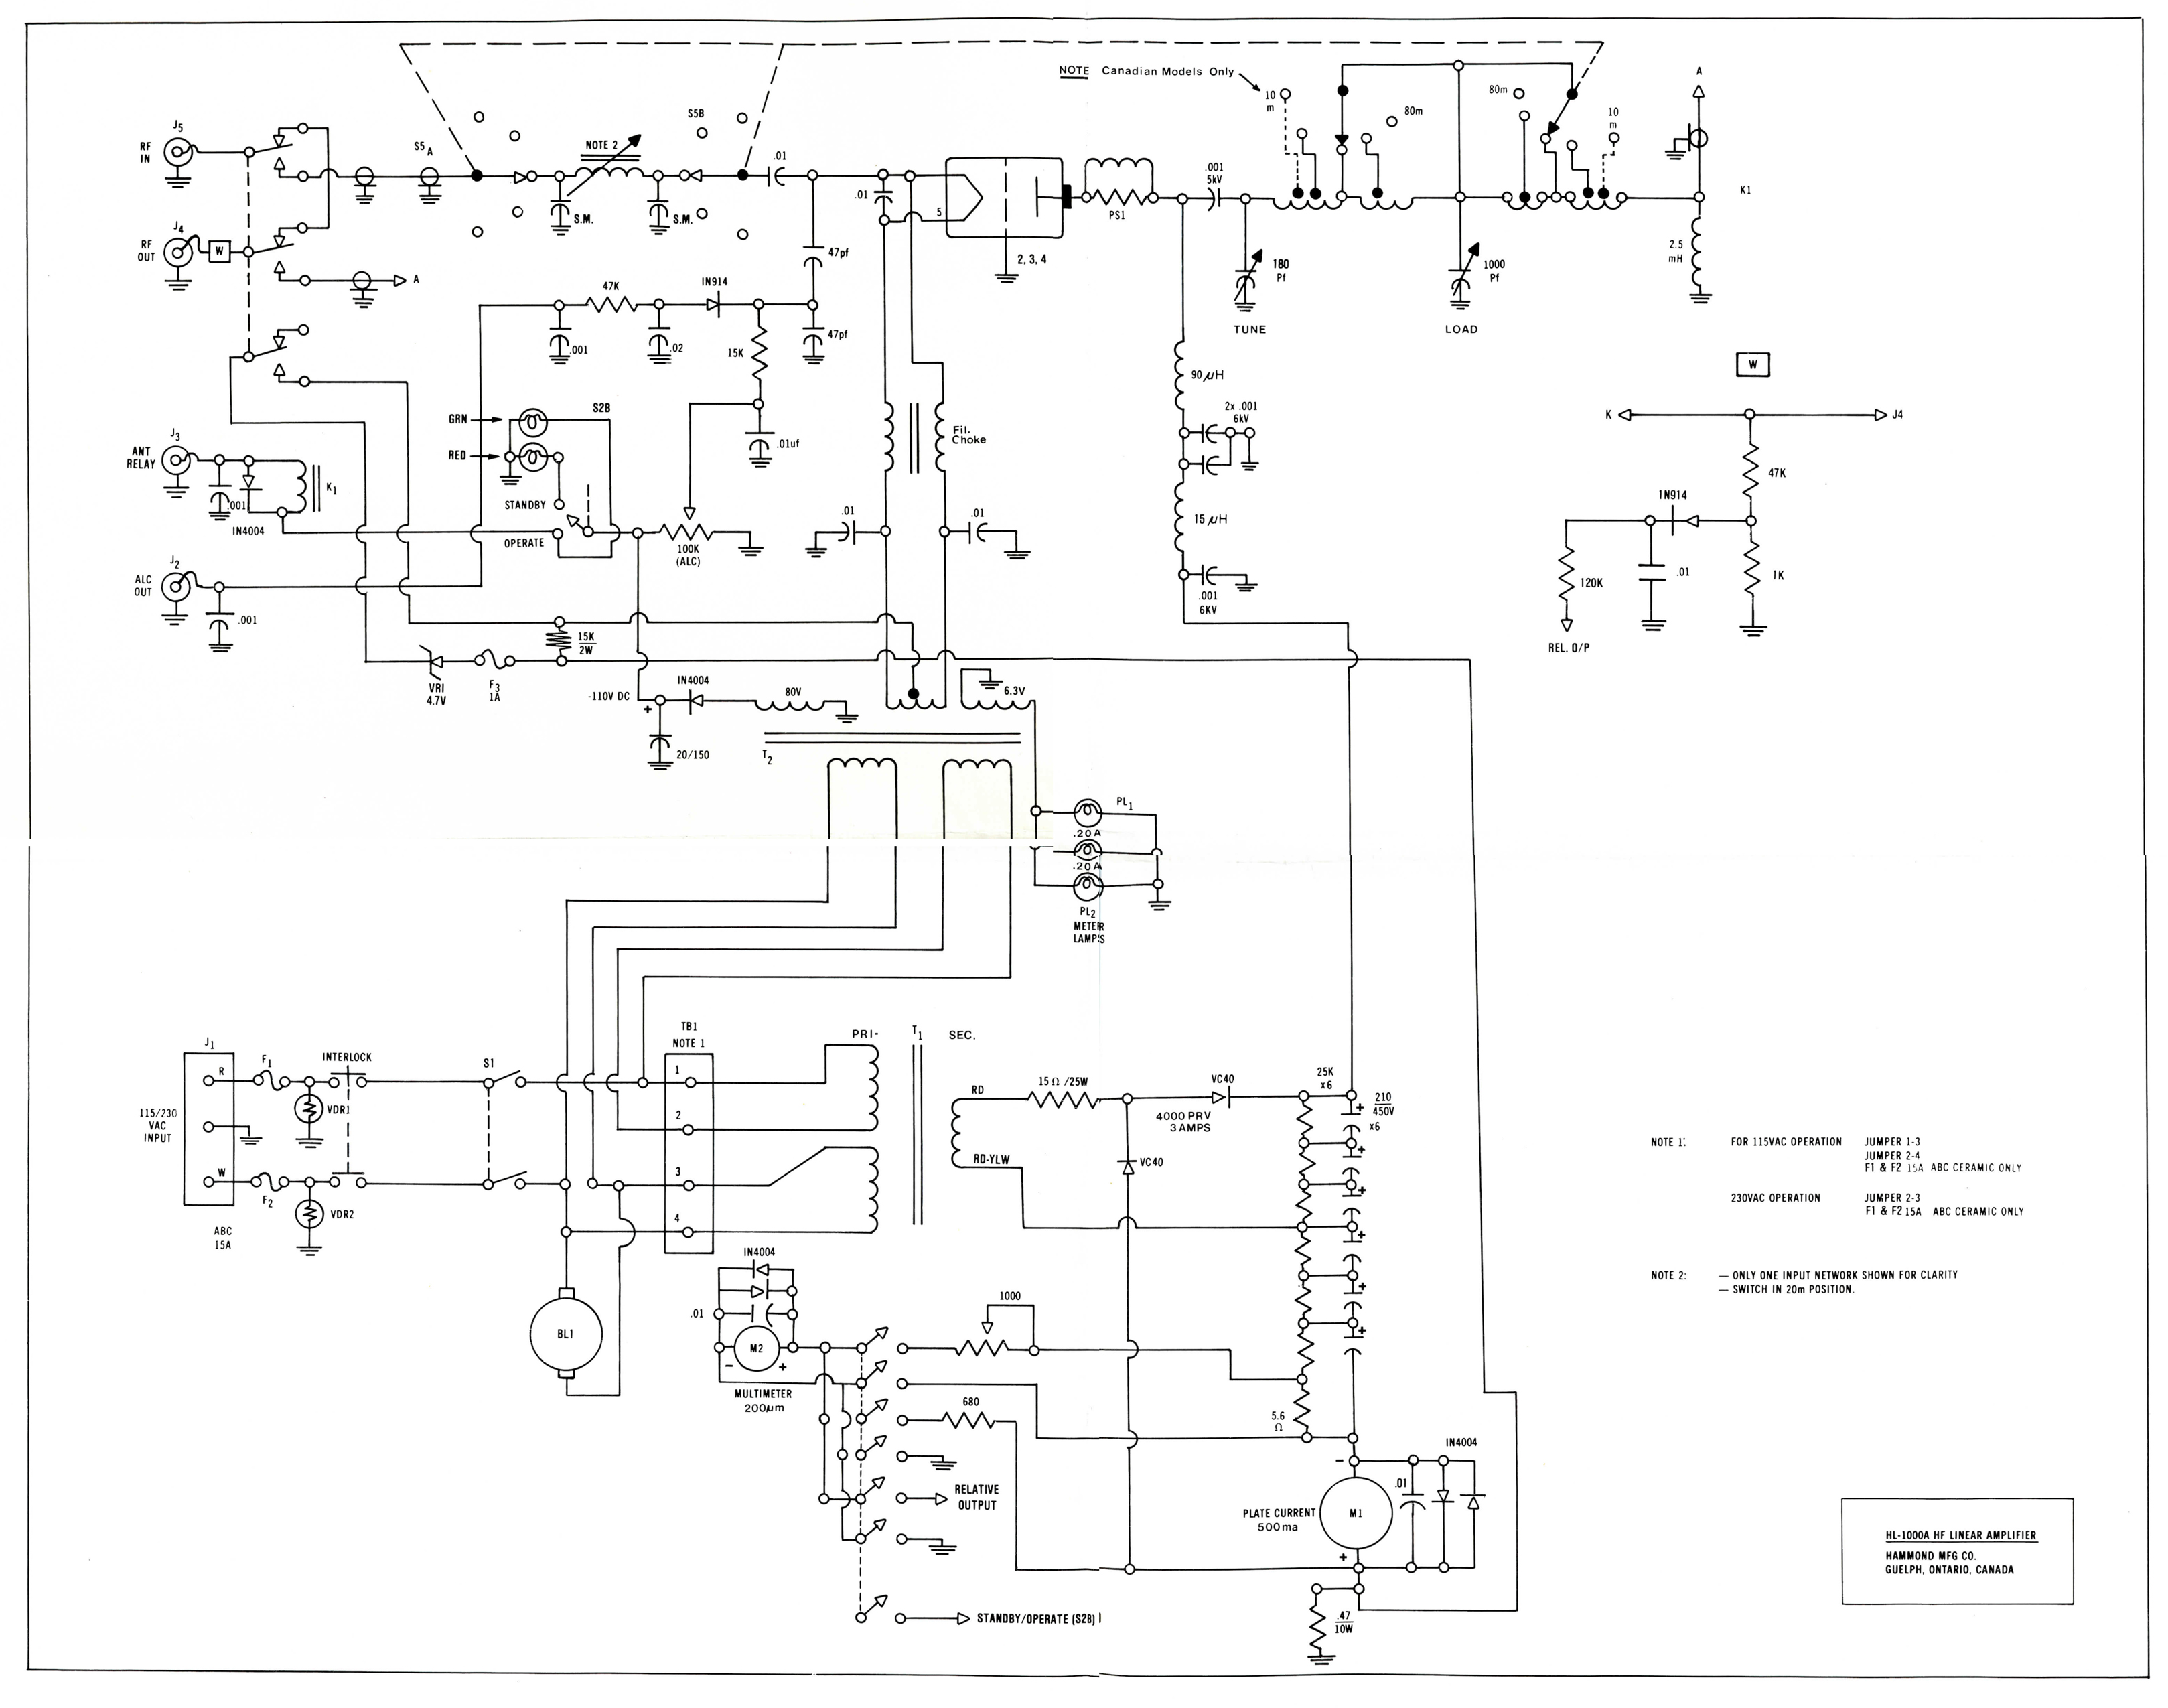 Hammond Mfg Discontinued Hf Linear Amplifier Hl 1000a 3 Way Switch Wiring Diagram For Amp Standby Schematic 8 X 10 High Res